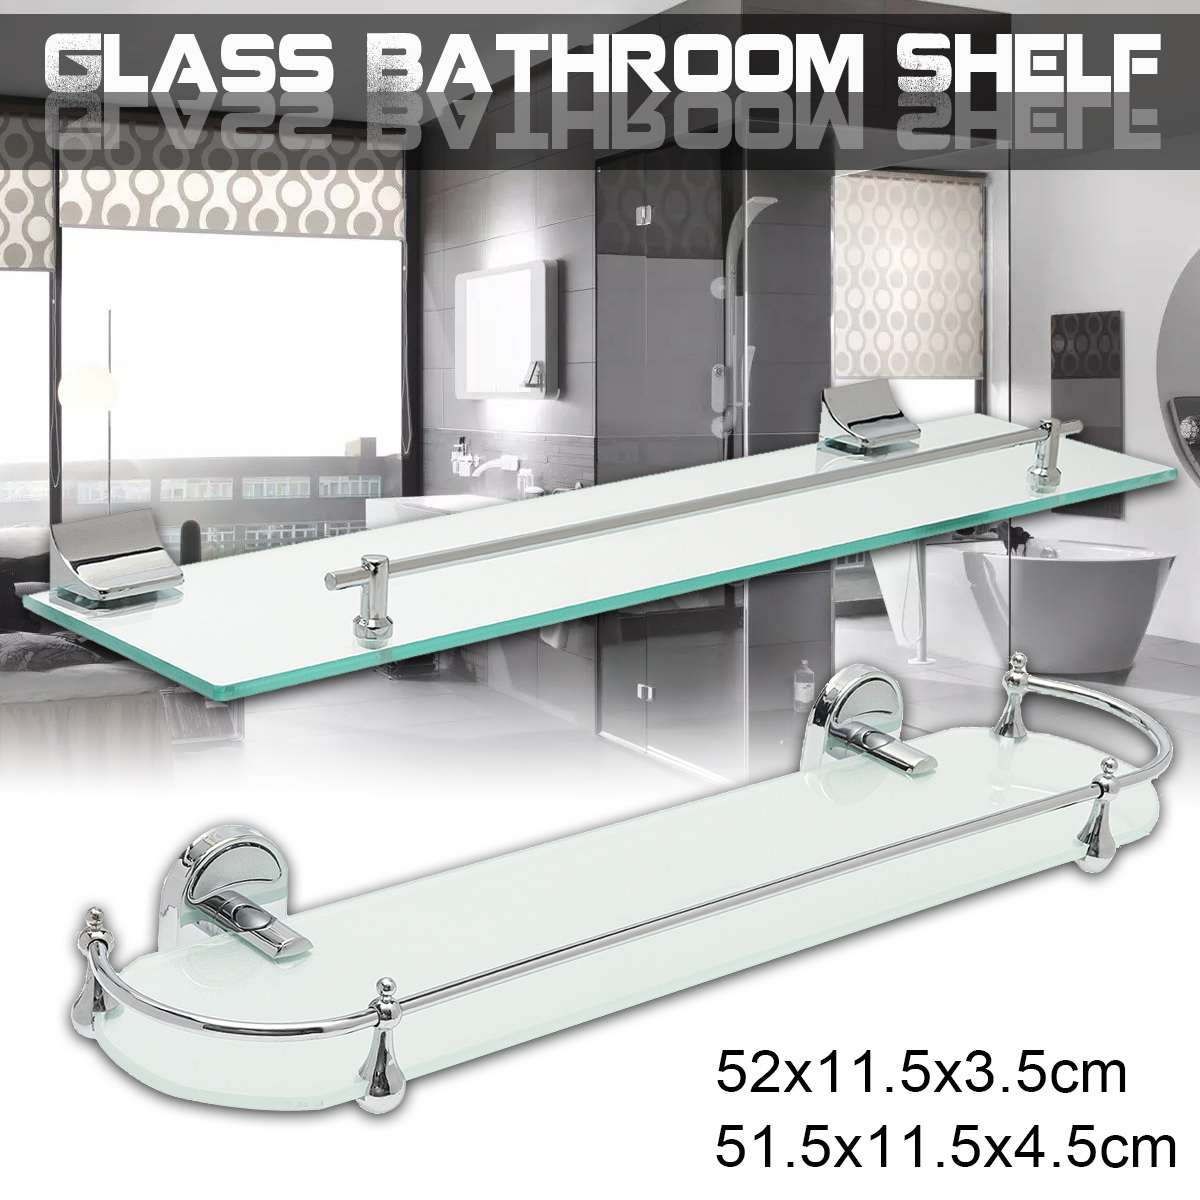 52cm Bathroom Glass Bath Shower Shelf Holder Organizer Single Layer Modern Style Glass Bathroom Shelves